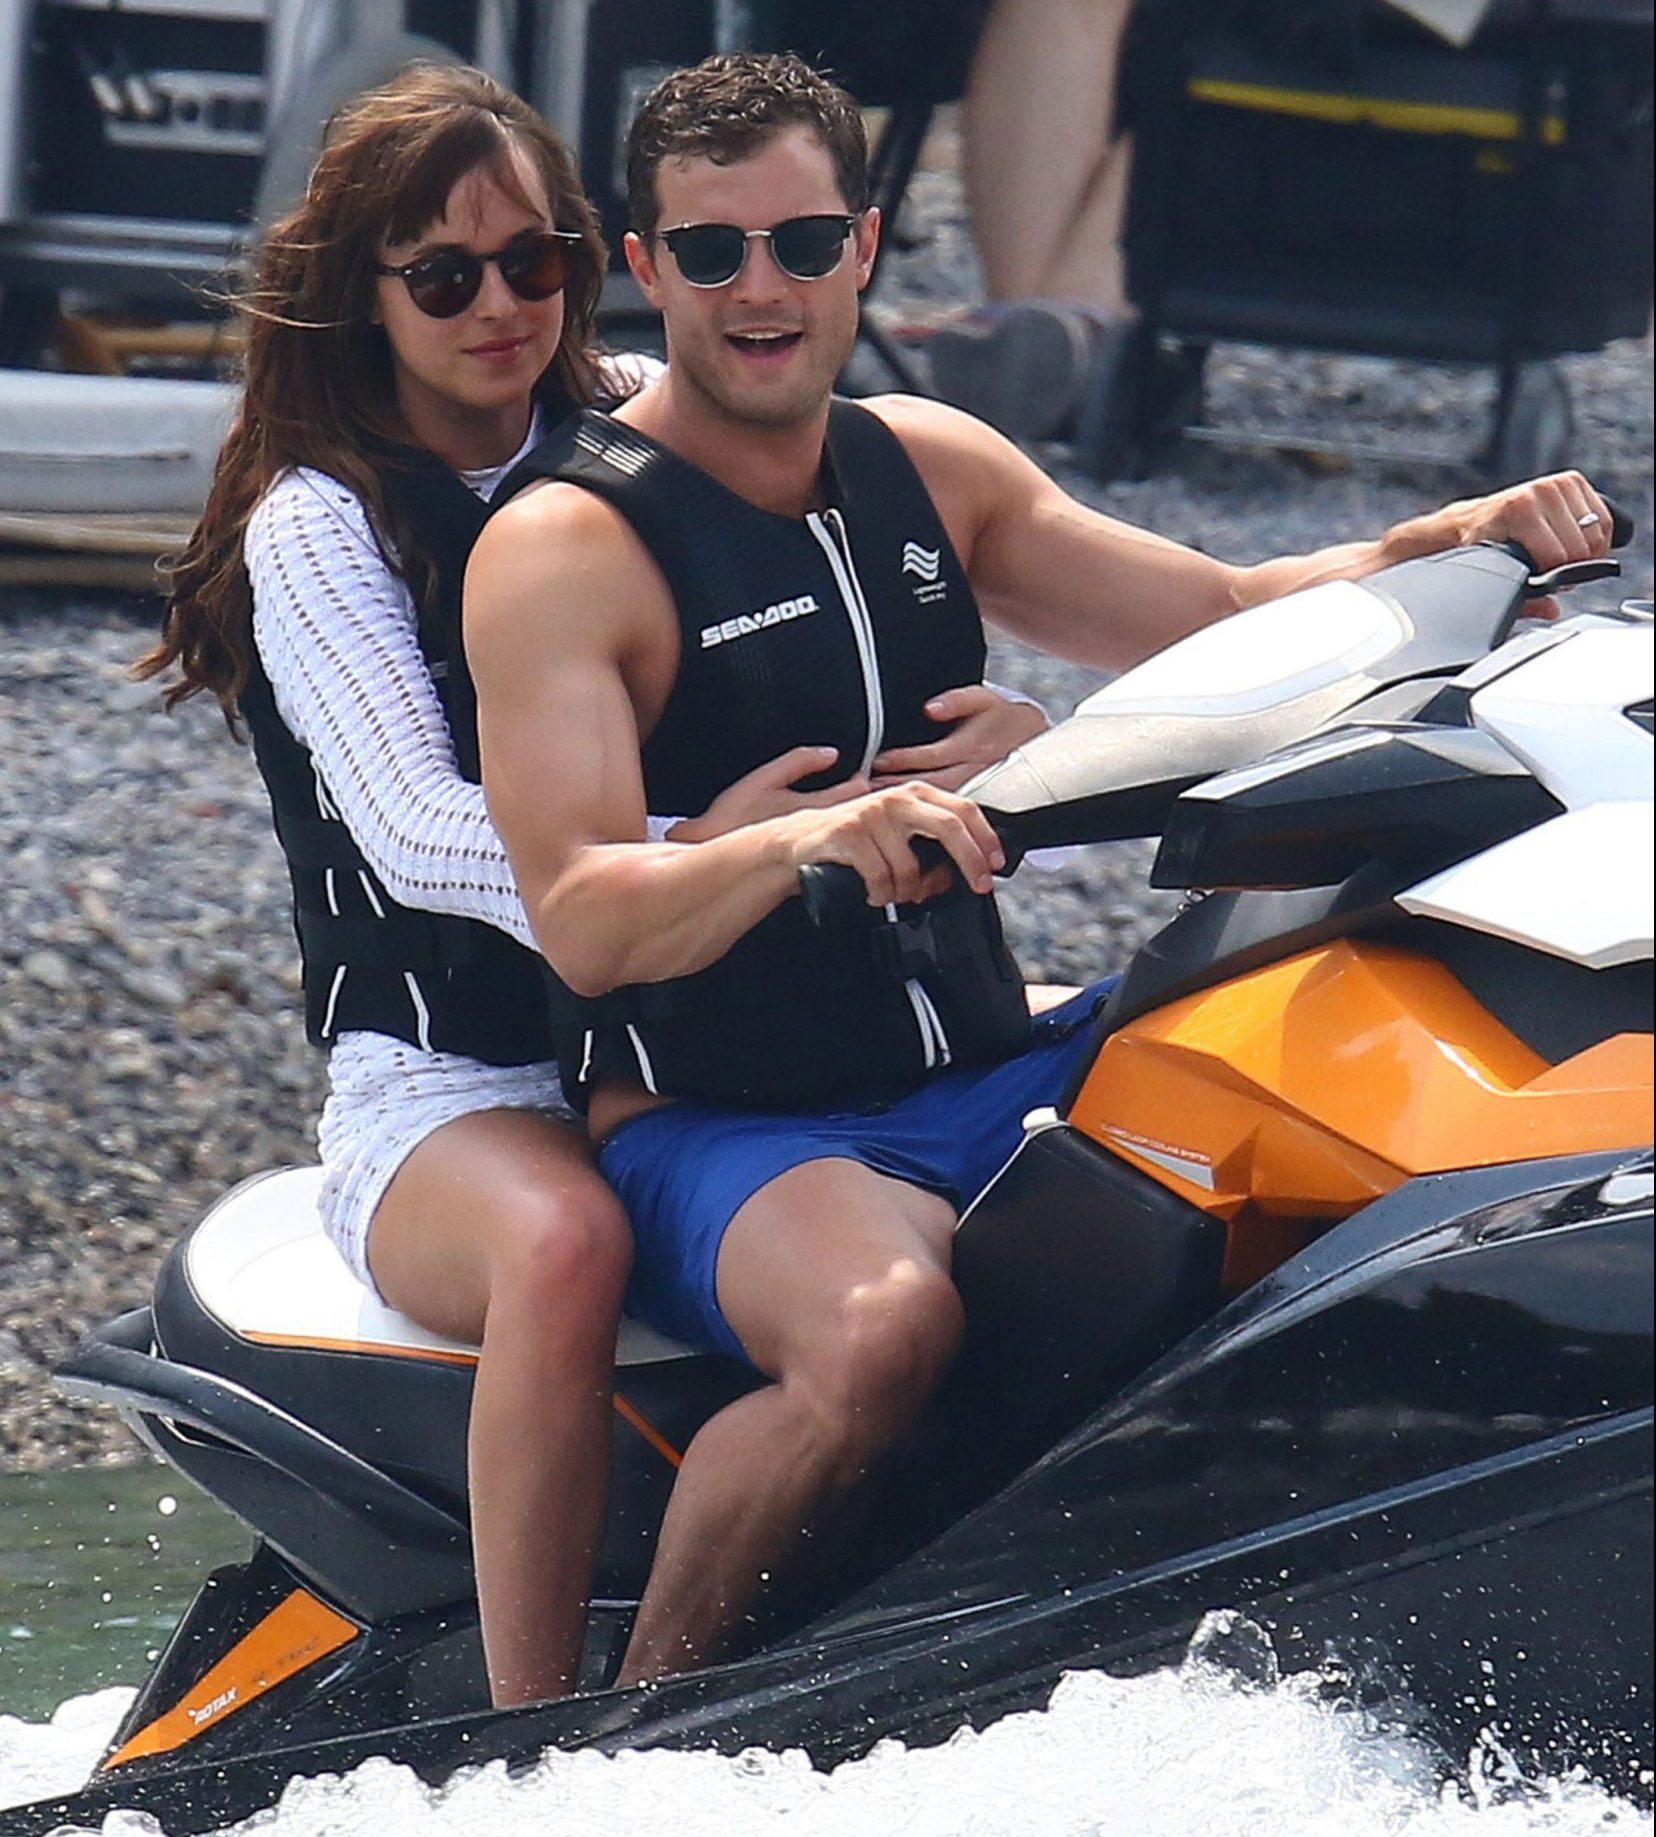 Fifty Shades Darker filming in Nice may be suspended following terrorist attack